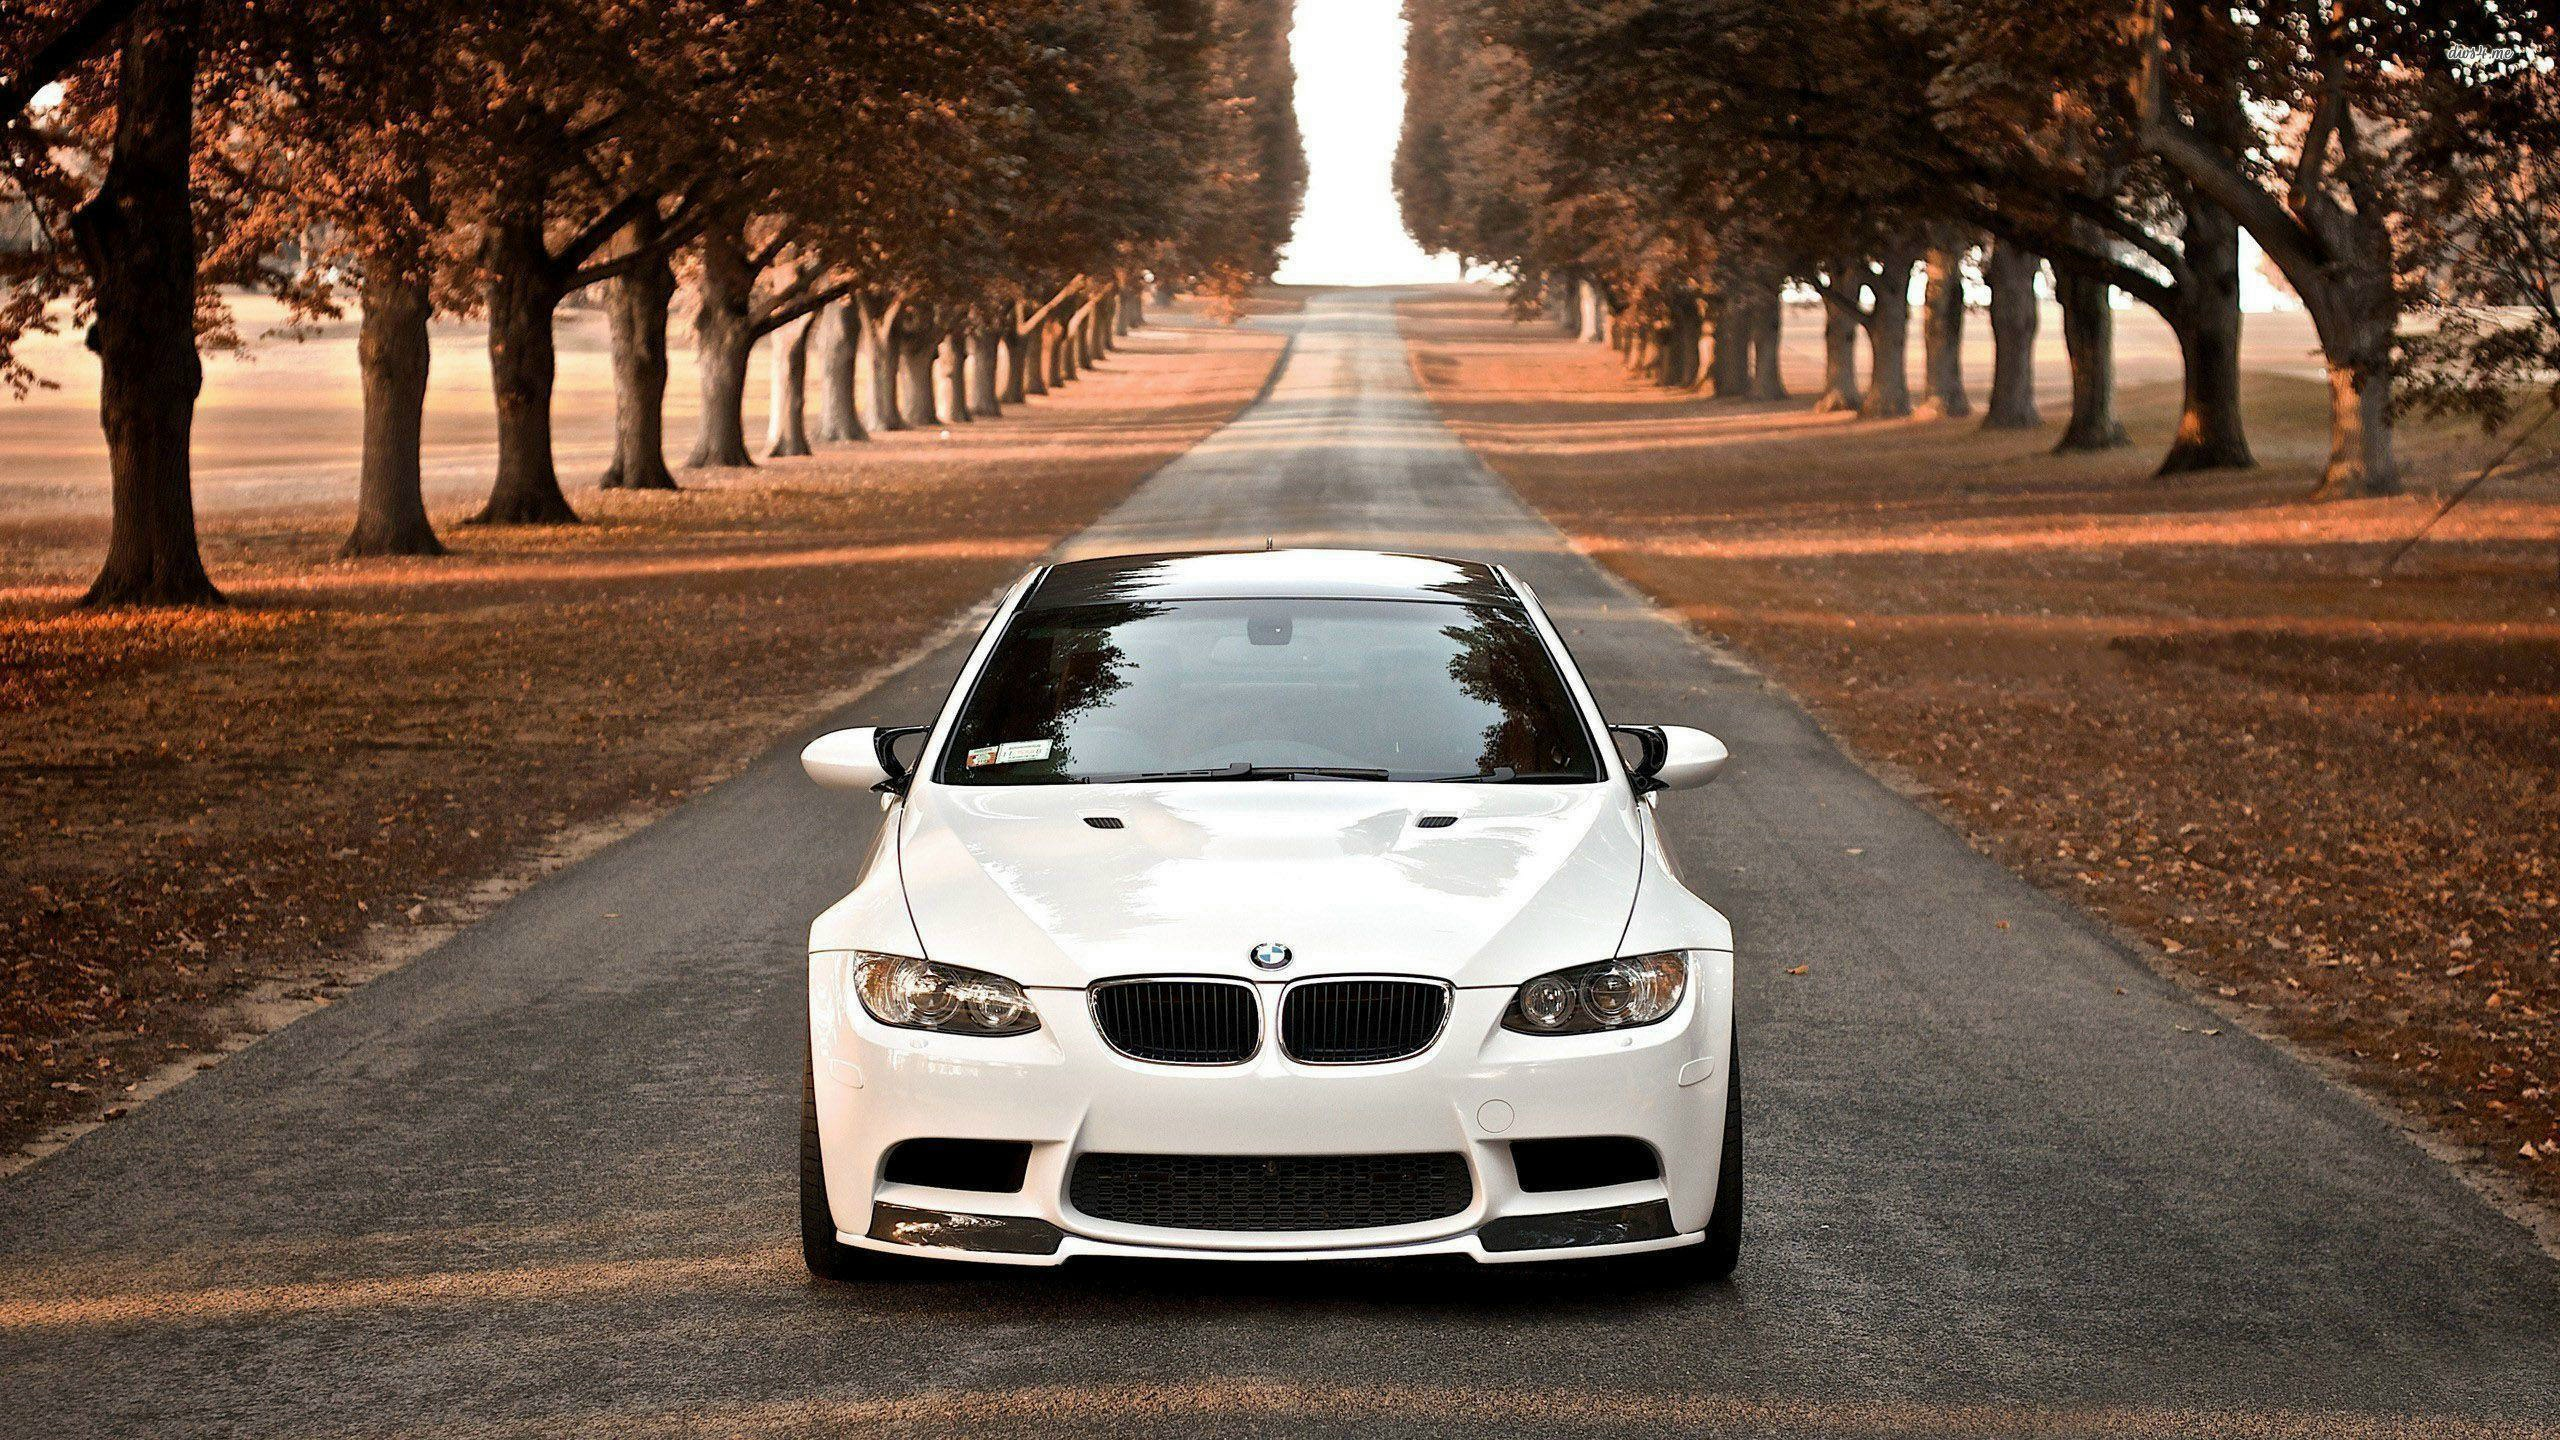 BMW E90 HD Wallpapers | Background Images | Photos ...